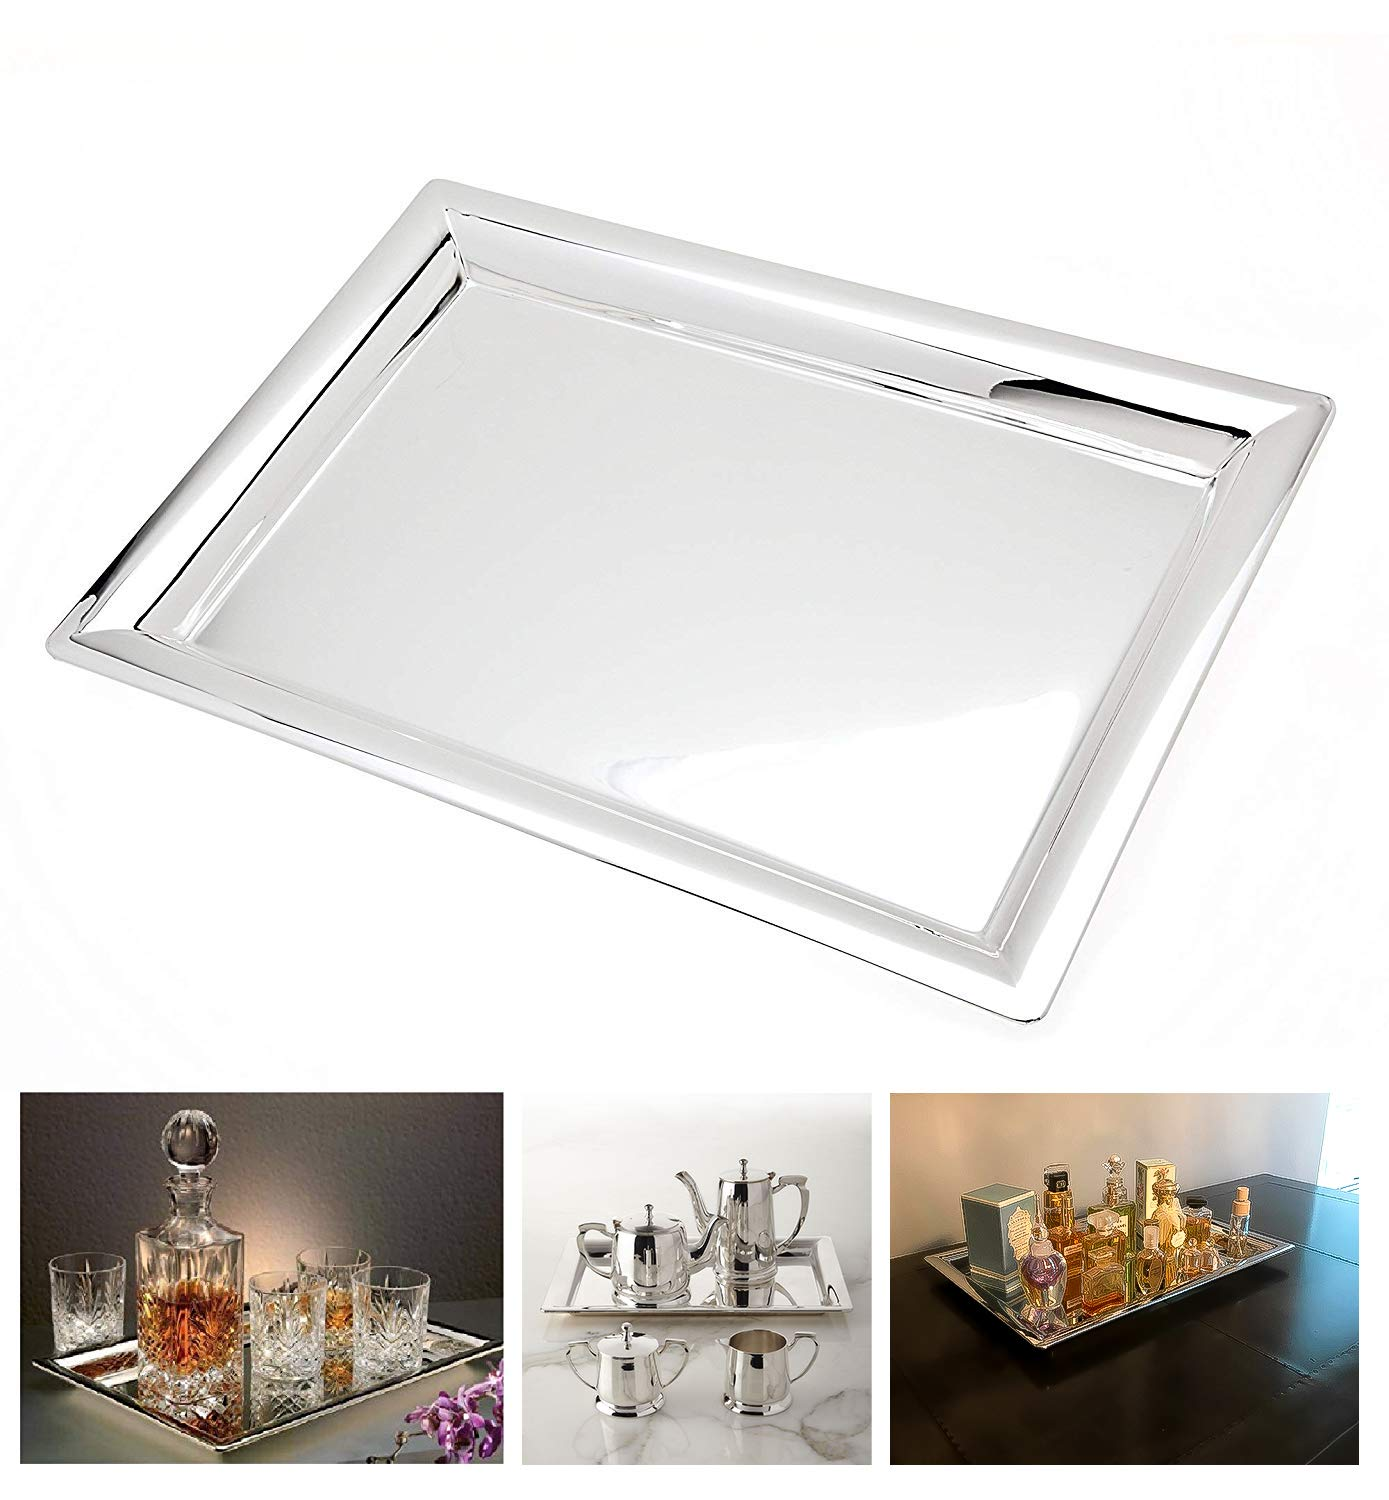 Le Raze Elegant Mirrored Rectangular Silver Tray Mirrored Tray For Whiskey Decanter Candle Sticks Vanity Set Perfume Tray And Serving